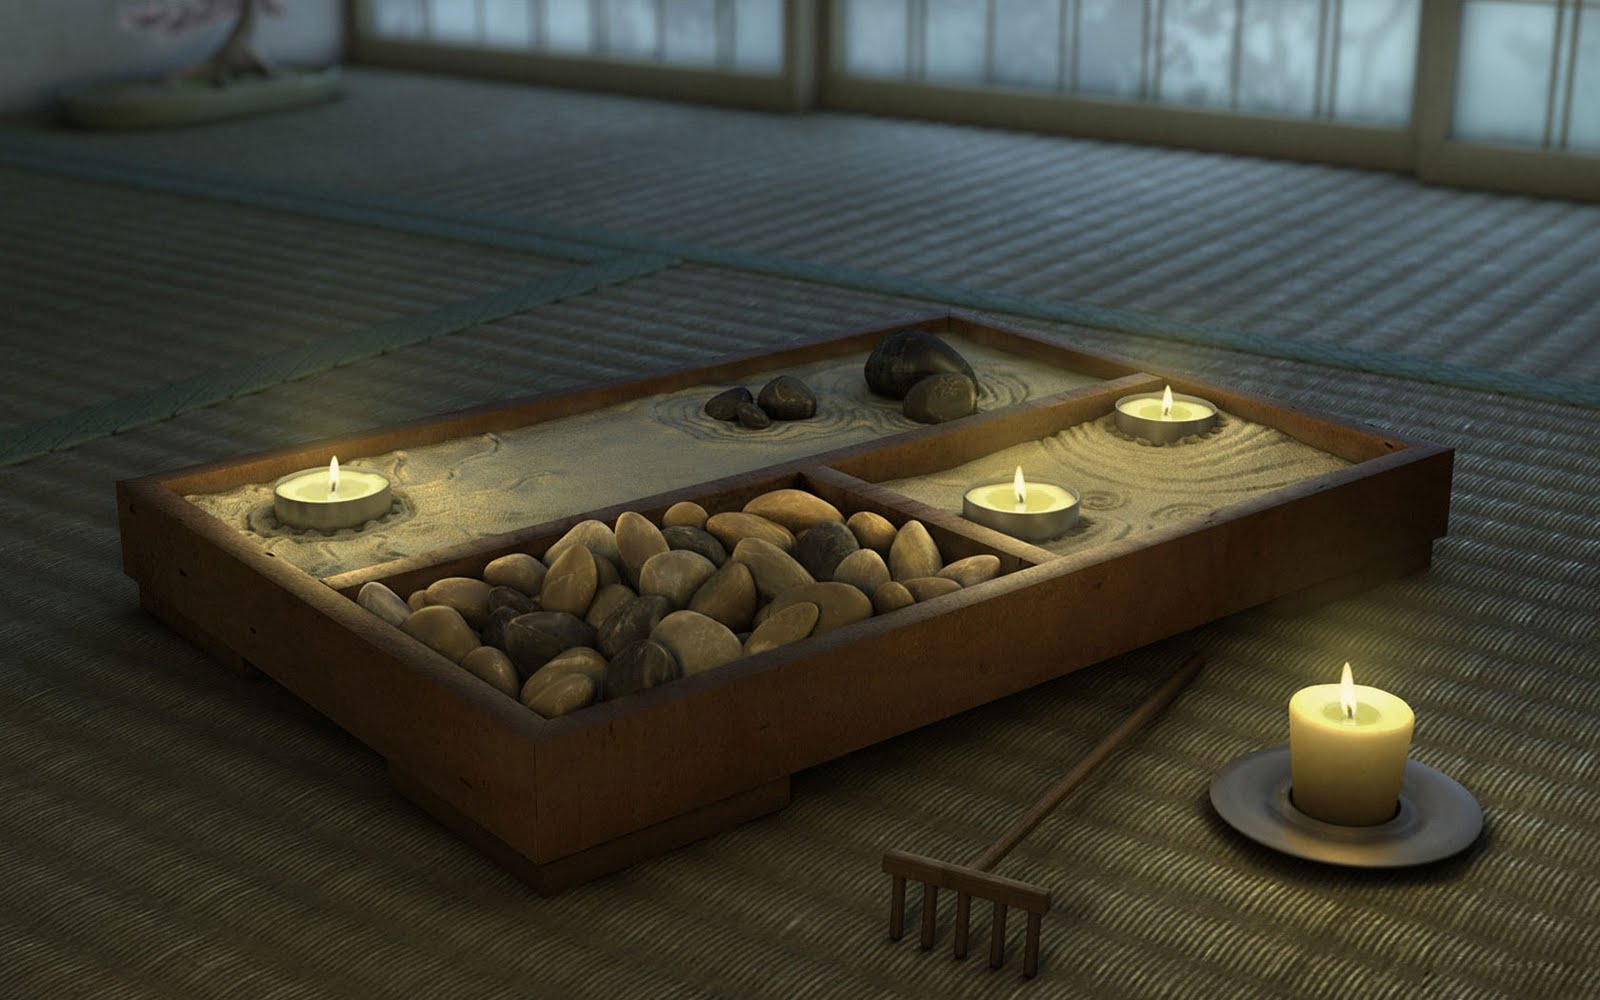 Office Zen Garden Top 5 Best Desktop Zen Gardens List My Zen Decor